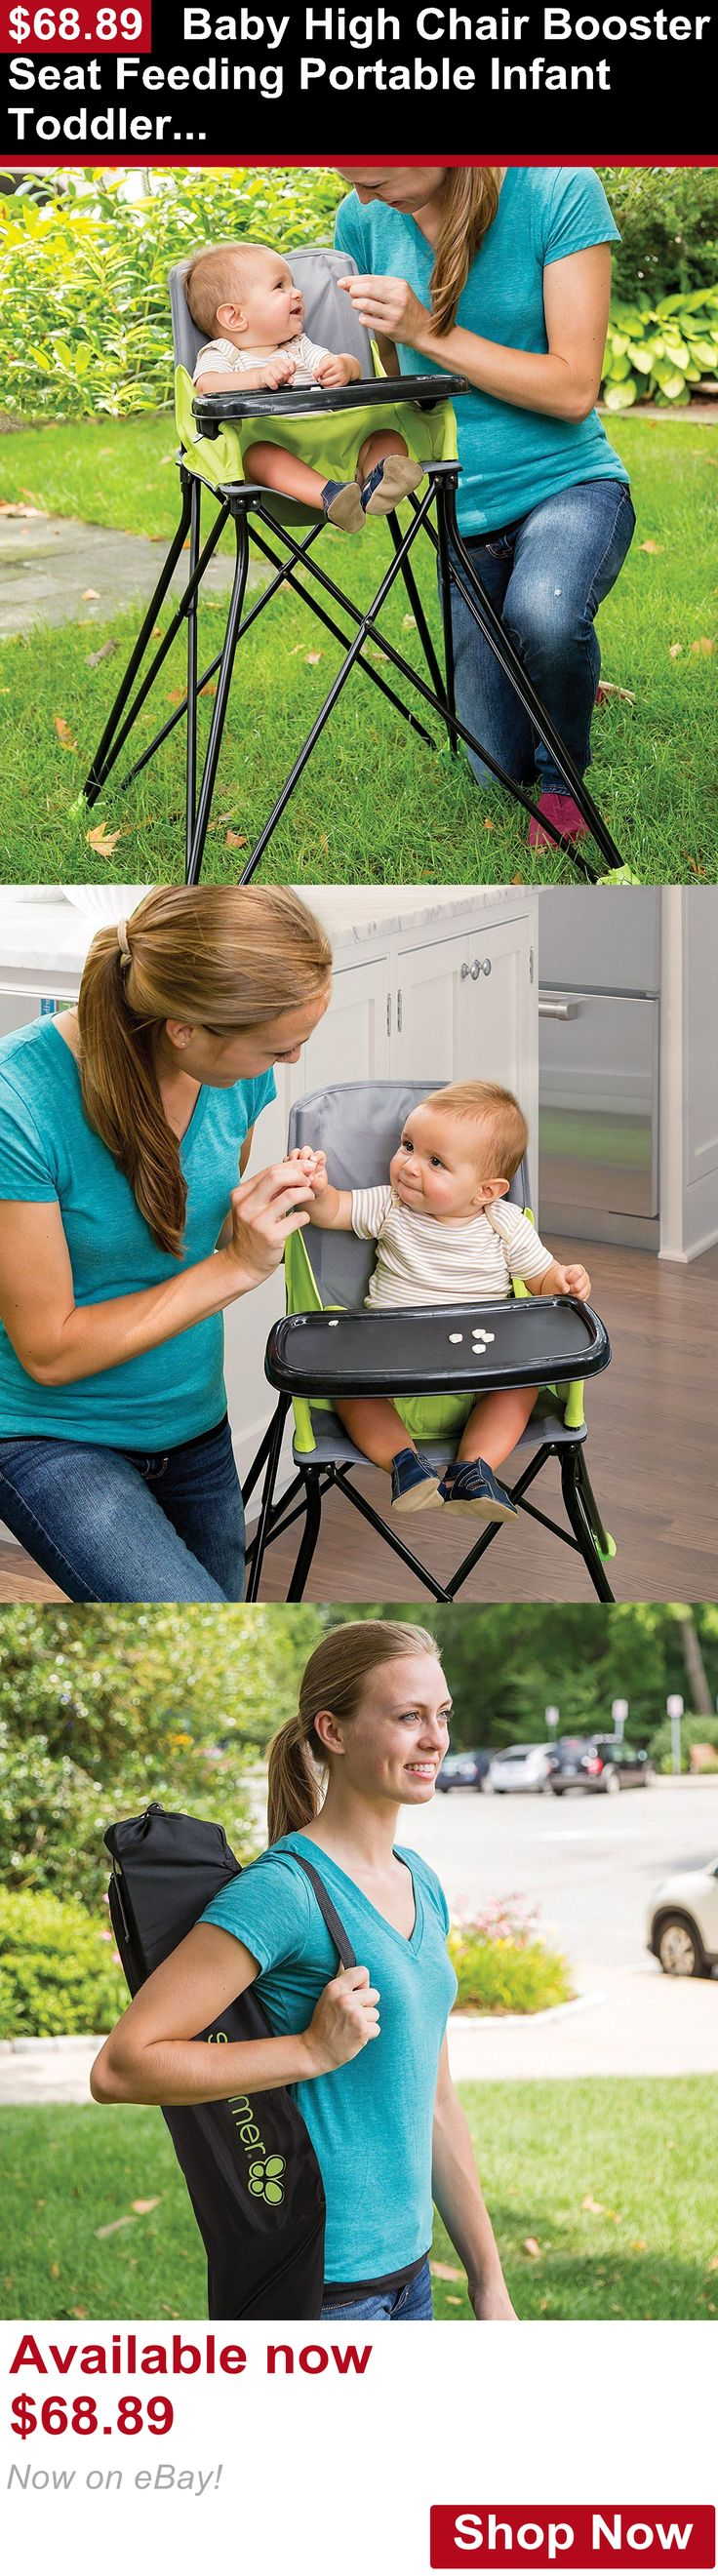 Baby High Chairs: Baby High Chair Booster Seat Feeding Portable Infant Toddler Folding Highchair BUY IT NOW ONLY: $68.89